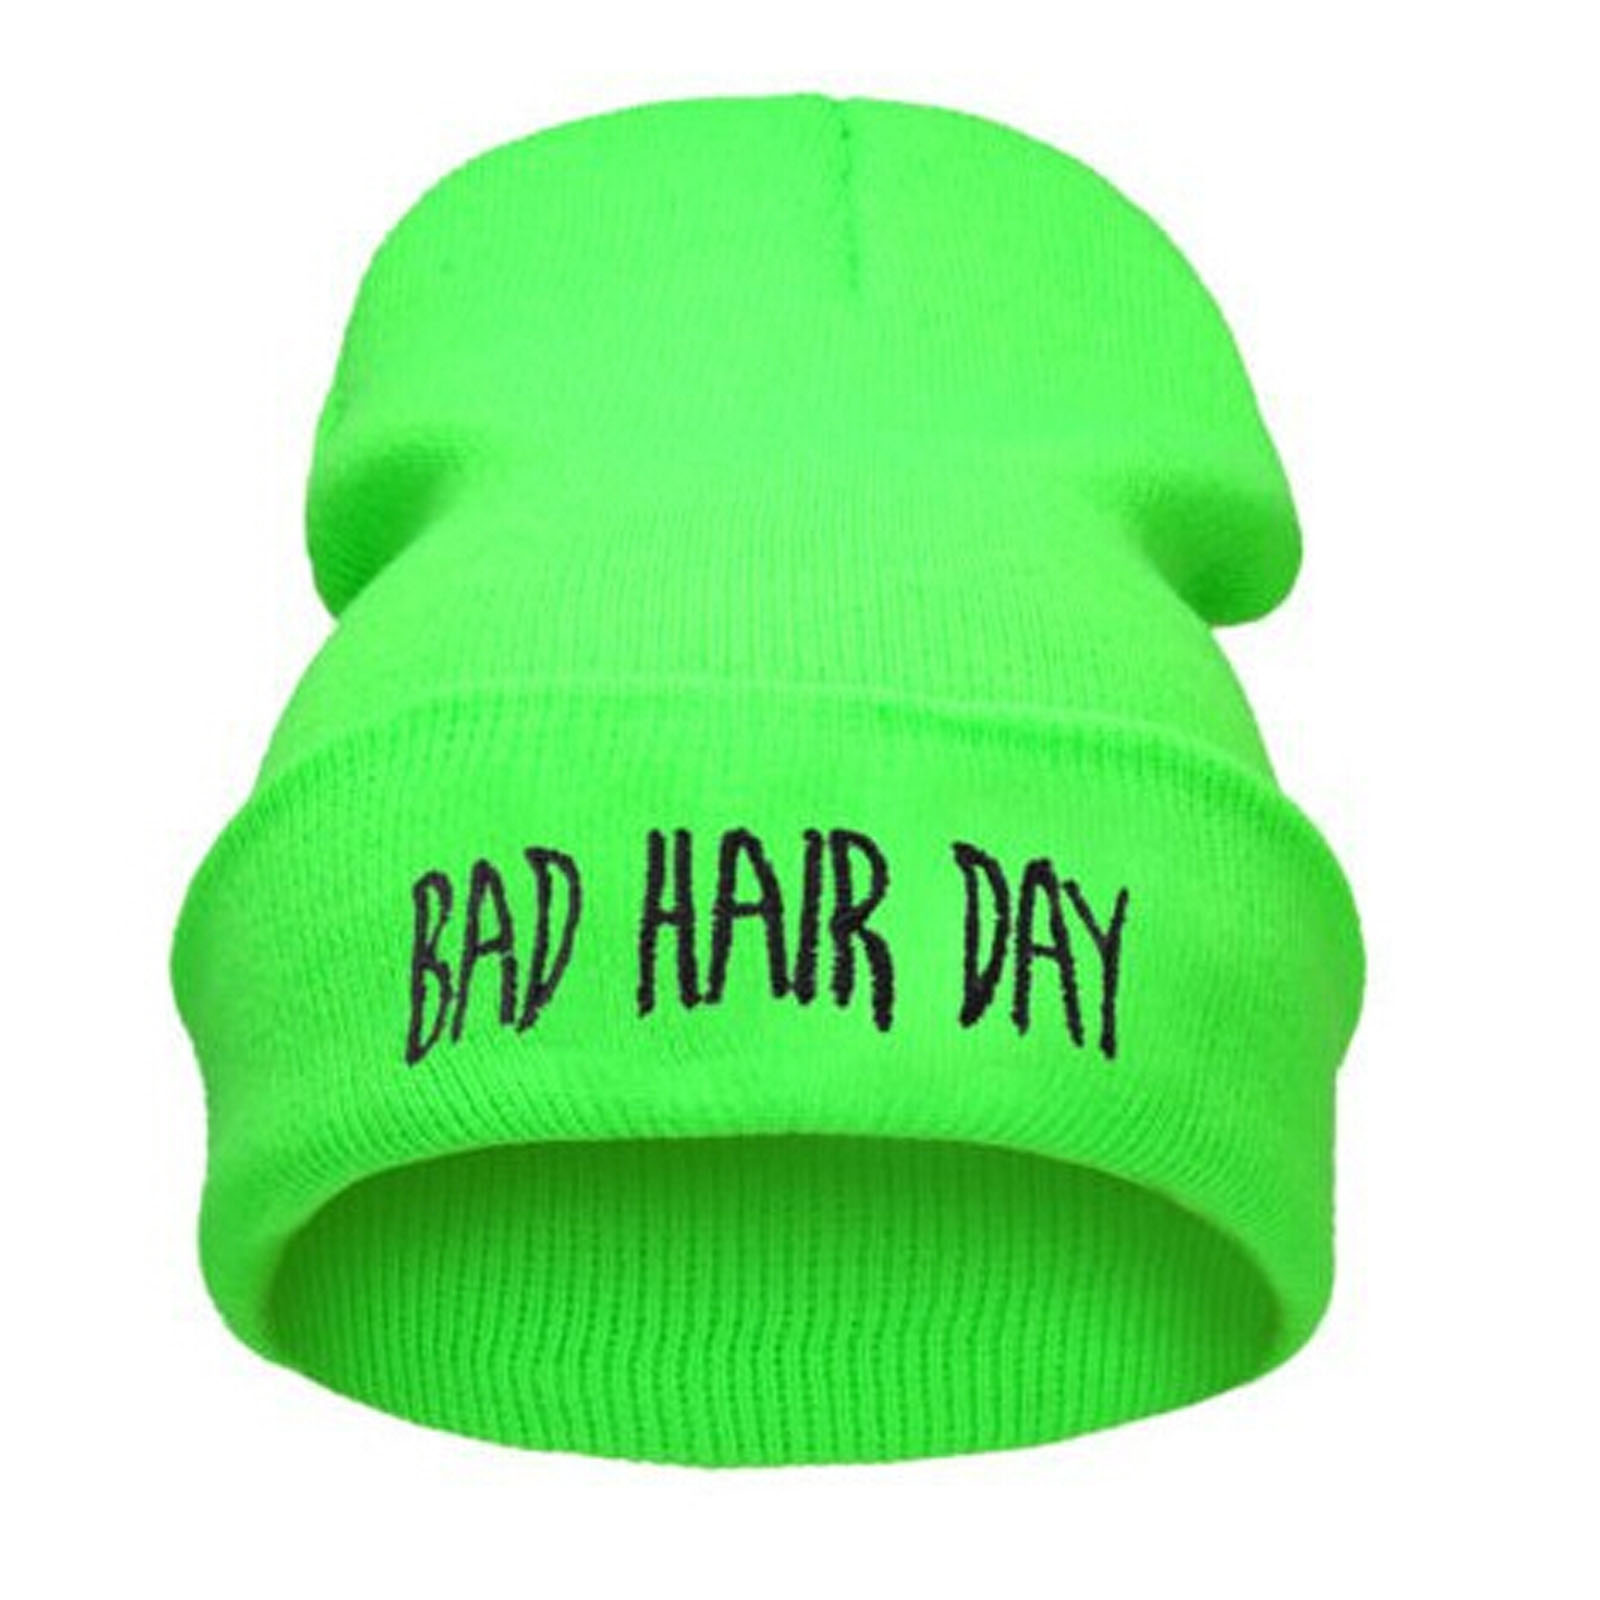 Mens & Womens Plain BEANIE Knit HAT HATS Ski Cap Solid Color Bad Hair Day Choose